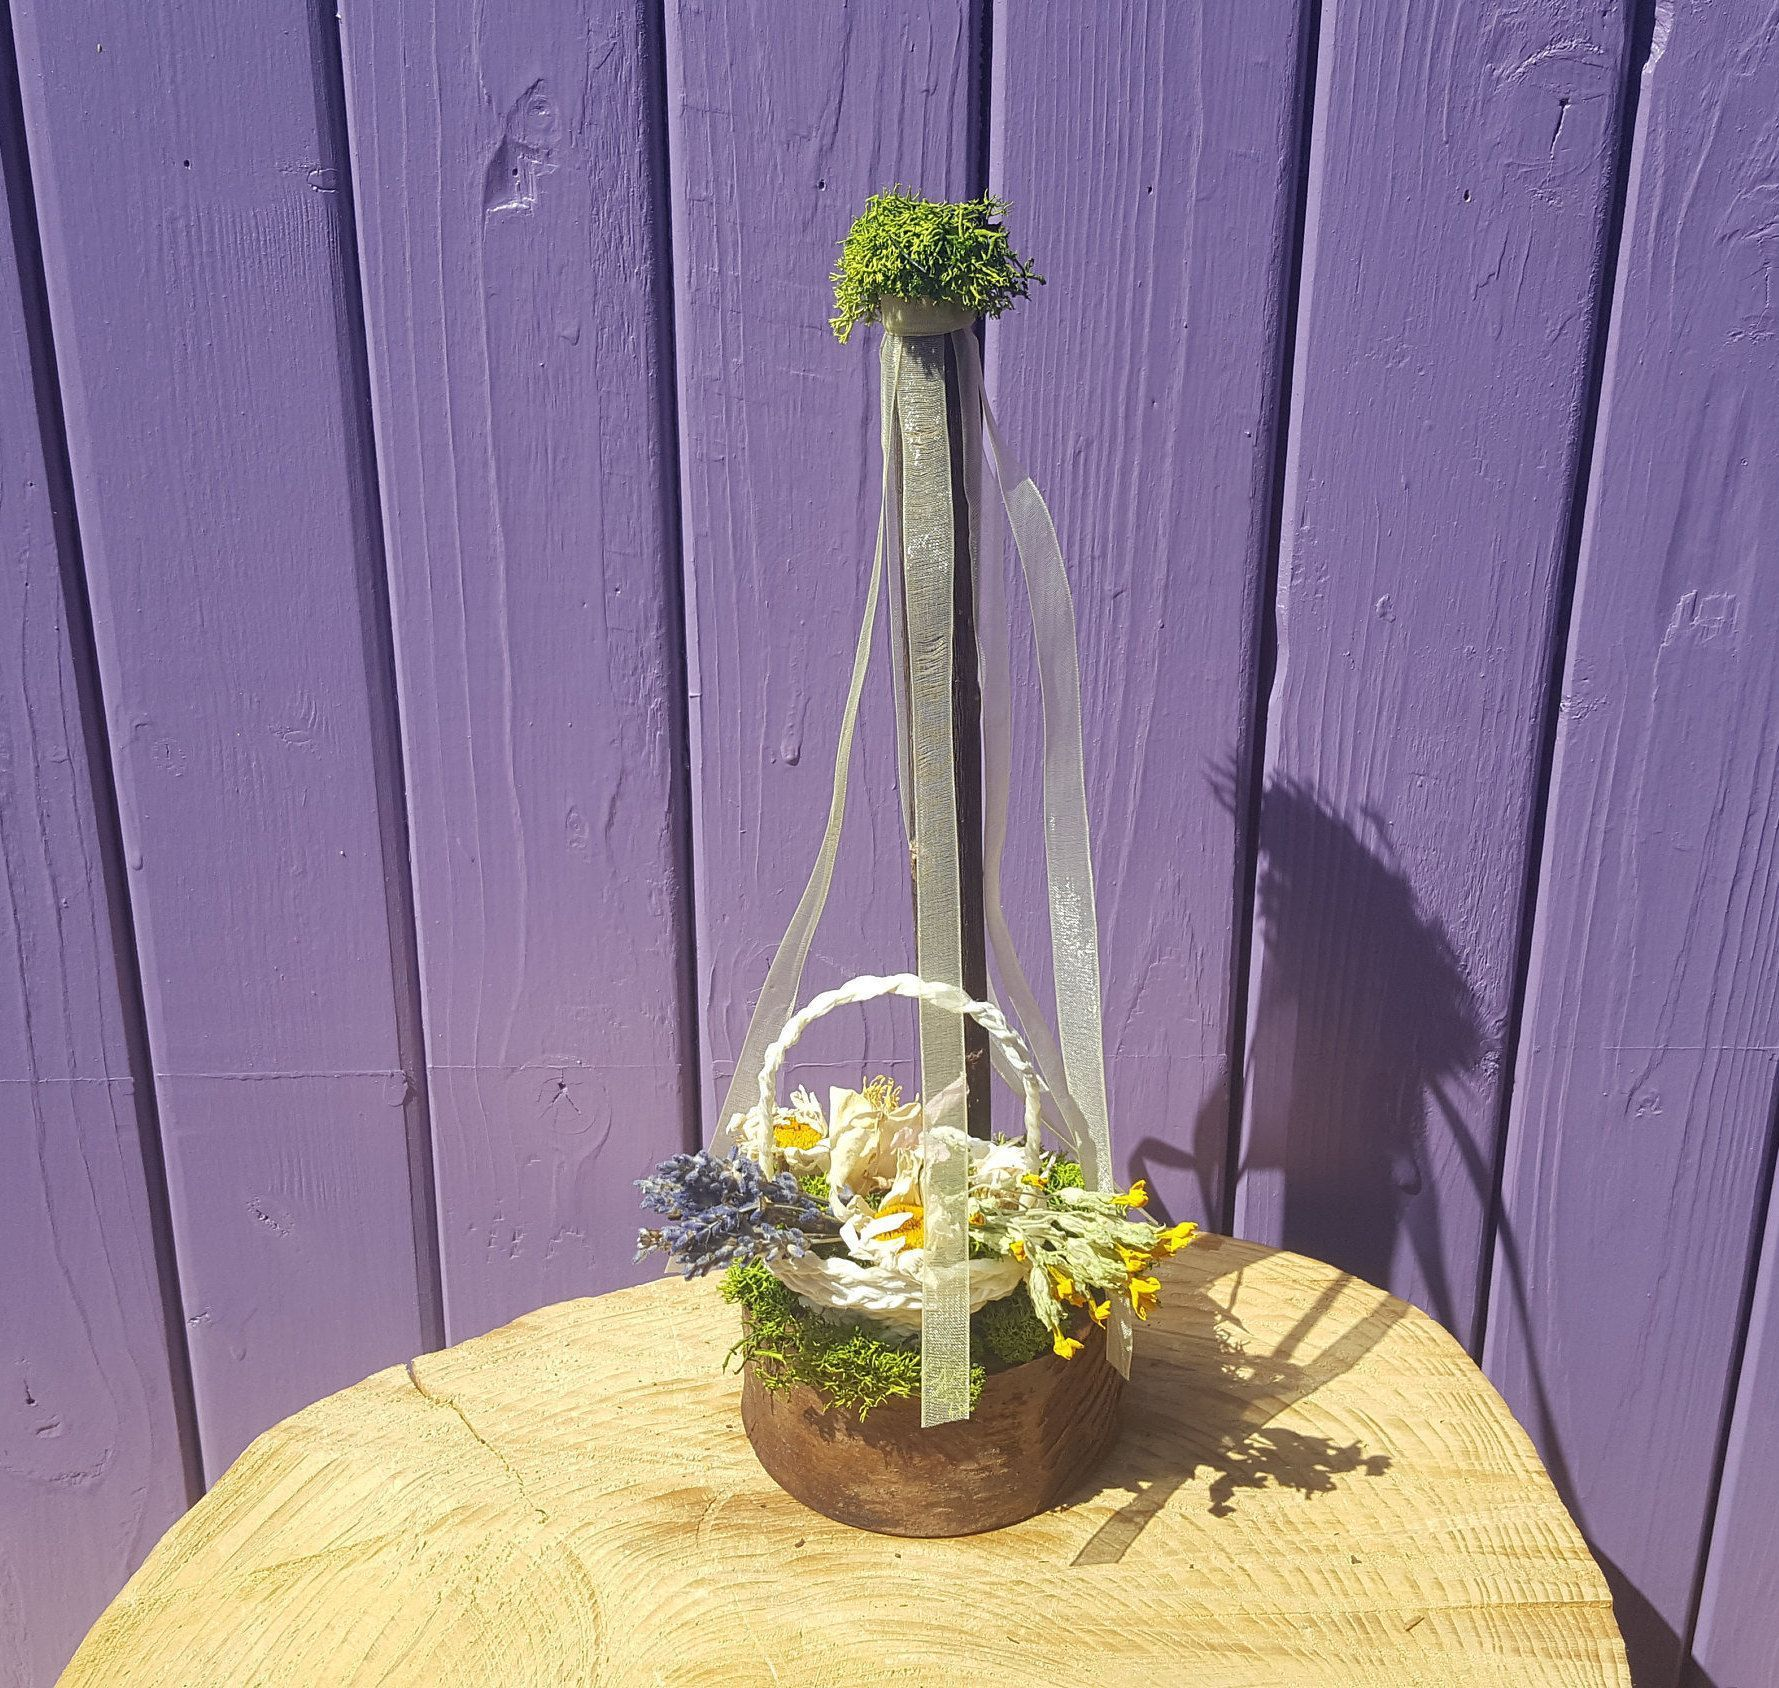 Daisy Basket Maypole, Dried Lavender, Flower Beltane Altar, Pagan Mayday Home, Beltaine Cowslip, Witchy Home Decor, Wiccan Decoration #wiccandecor Daisy Basket Maypole, Dried Lavender, Flower Beltane Altar, Pagan Mayday Home, Beltaine Cowslip, Witchy Home Decor, Wiccan Decoration #wiccandecor Daisy Basket Maypole, Dried Lavender, Flower Beltane Altar, Pagan Mayday Home, Beltaine Cowslip, Witchy Home Decor, Wiccan Decoration #wiccandecor Daisy Basket Maypole, Dried Lavender, Flower Beltane Altar, #wiccandecor